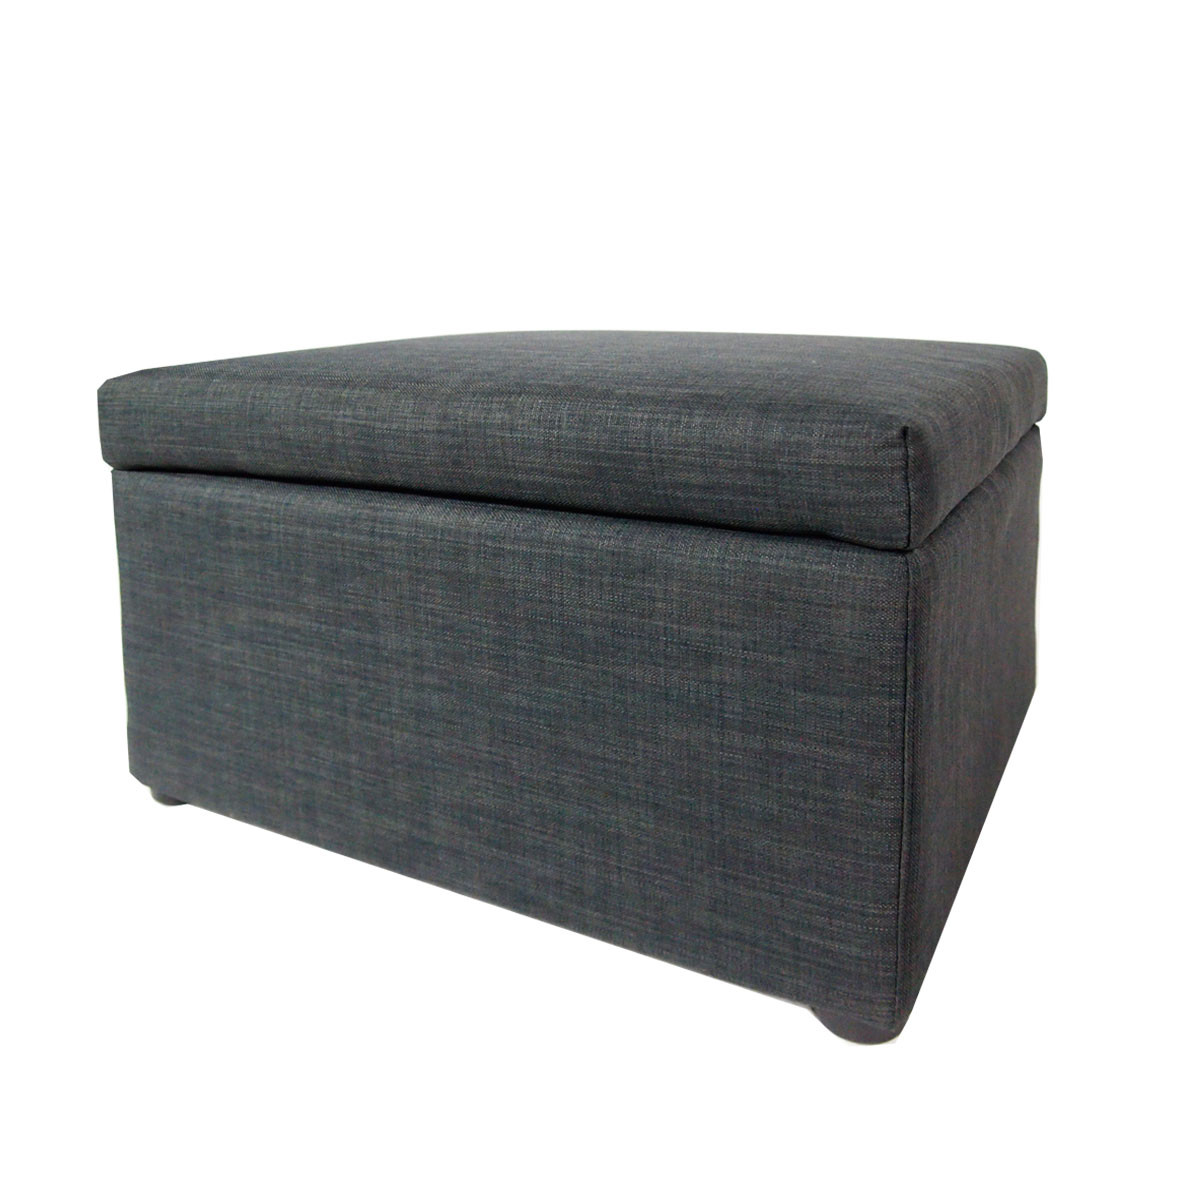 Ottoman Coffee Table Grey Furniture Home Décor Fortytwo